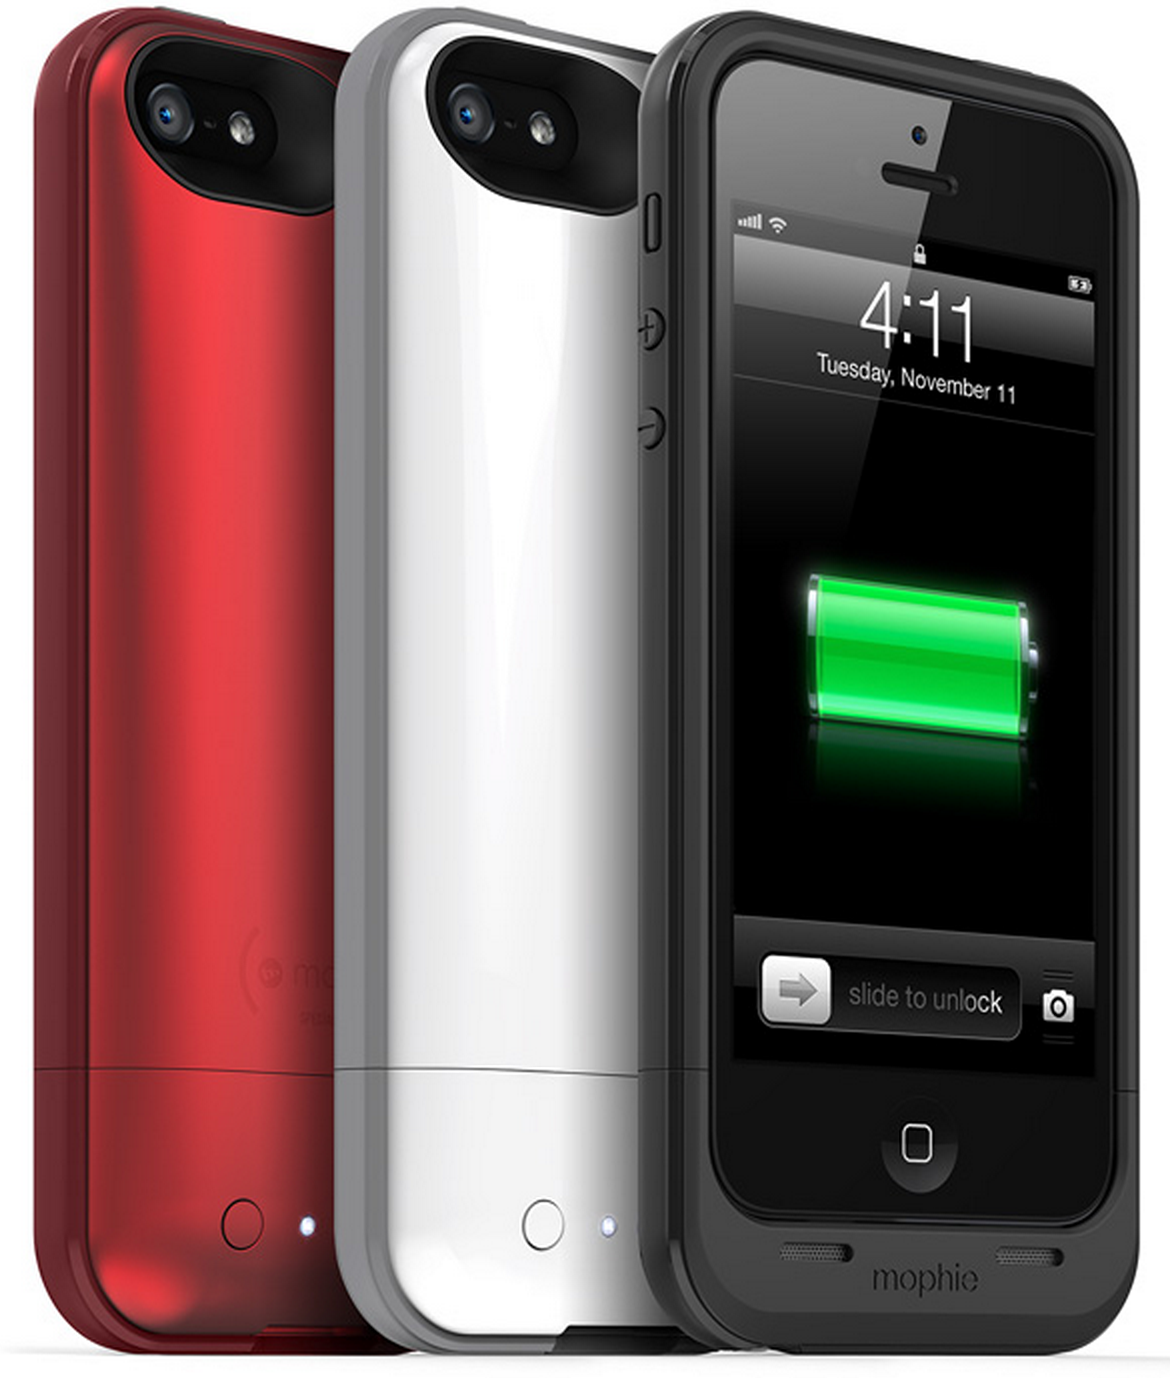 Mophie introduces 2100mAh iPhone 5 Juice Pack Plus cases